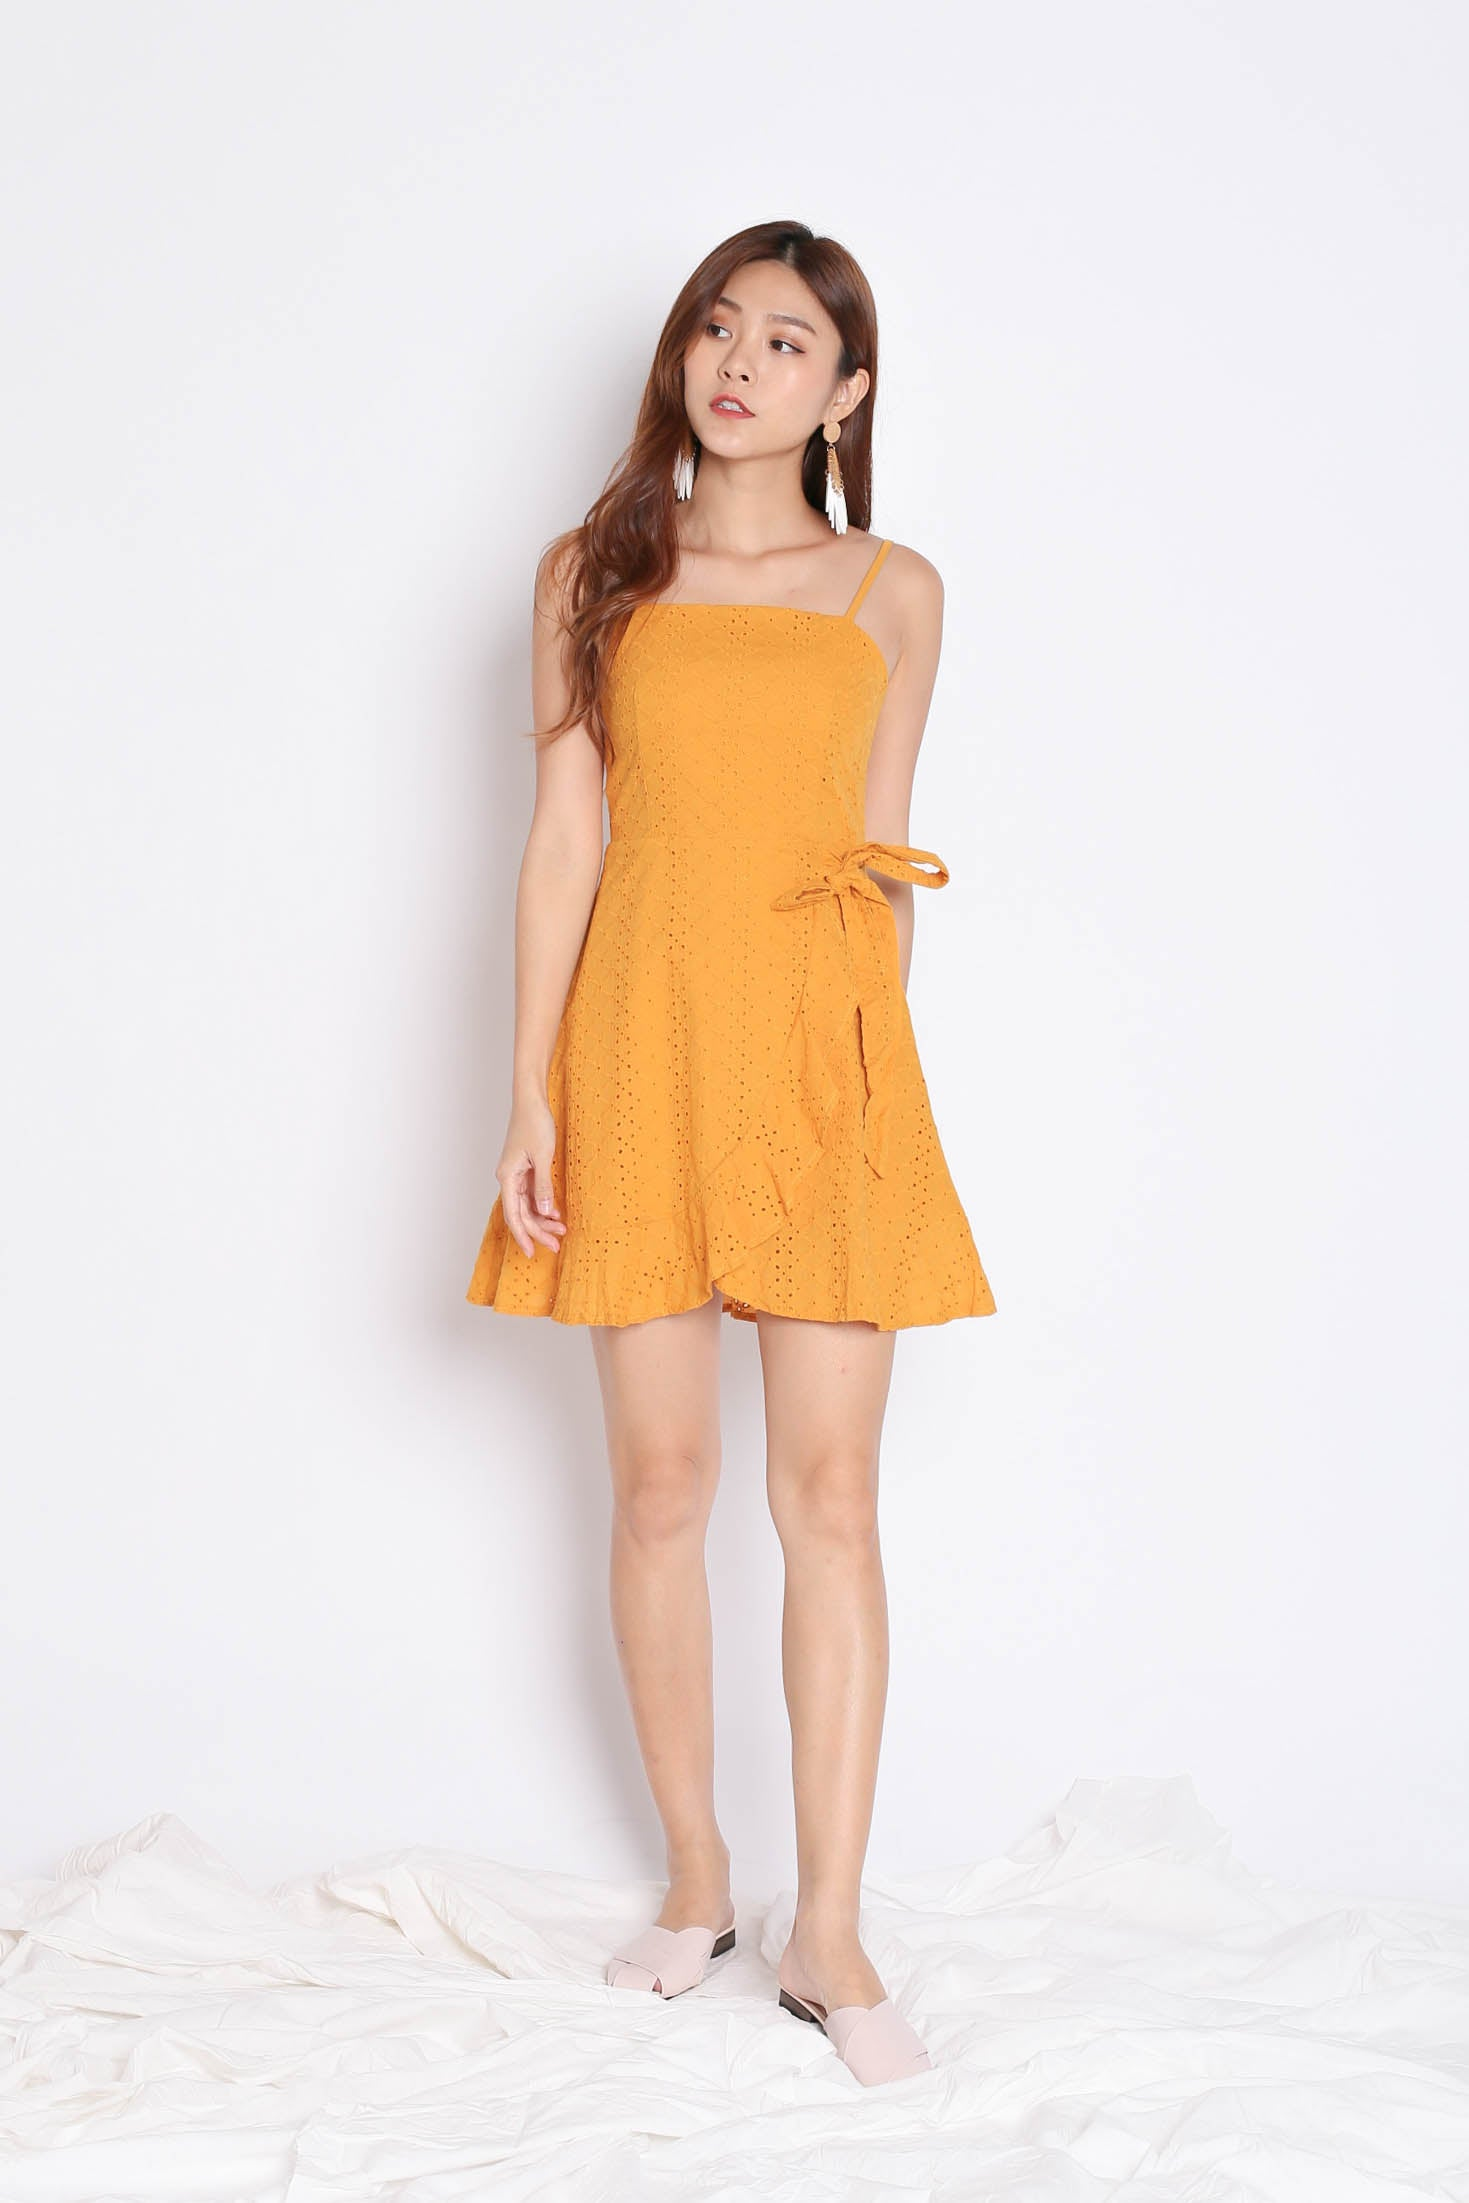 (PREMIUM) MAZEL EYELET WRAP DRESS IN MARIGOLD